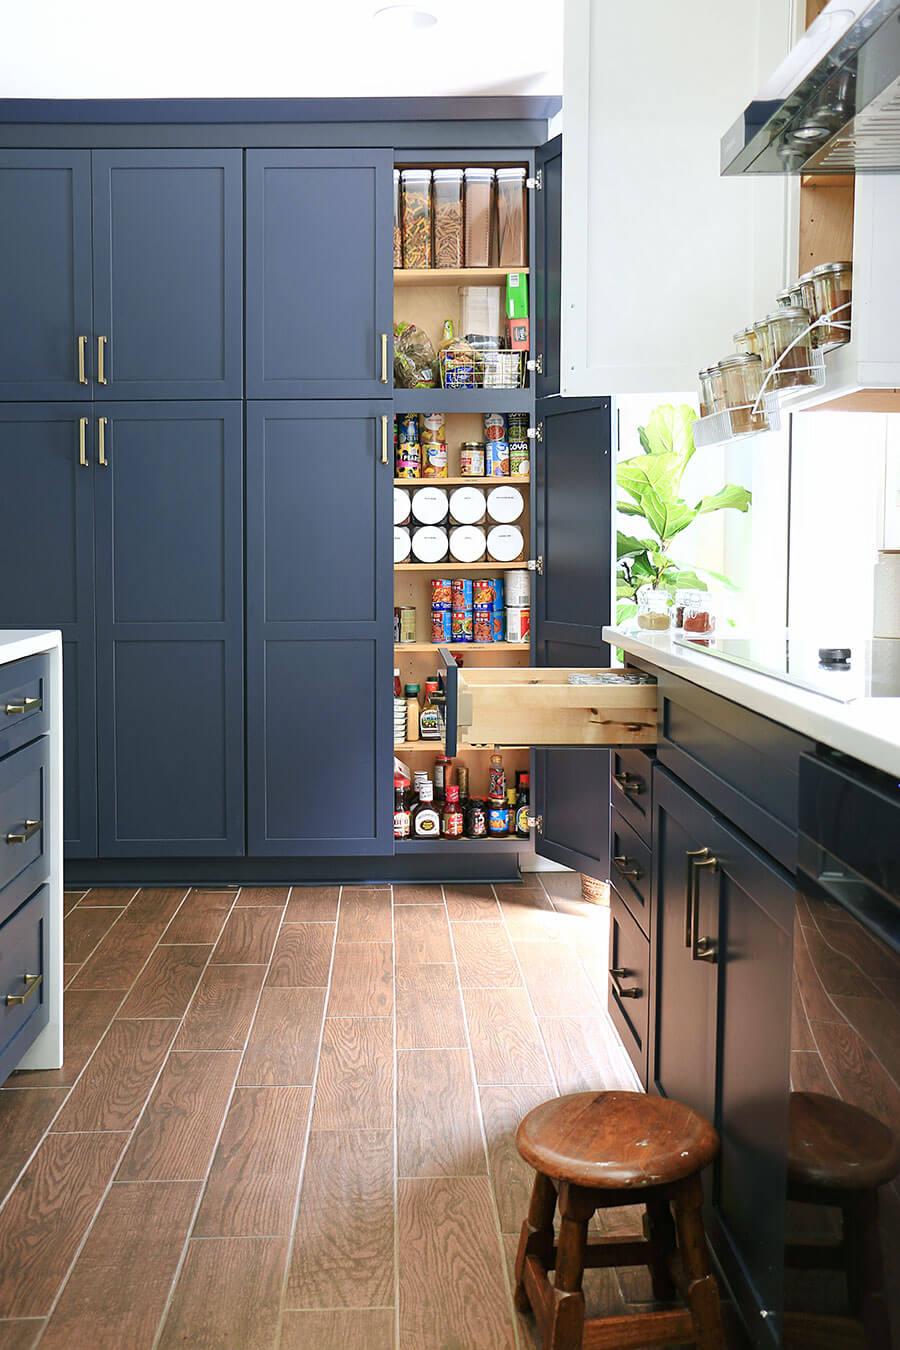 Open-kitchen-cabinets-and-drawers